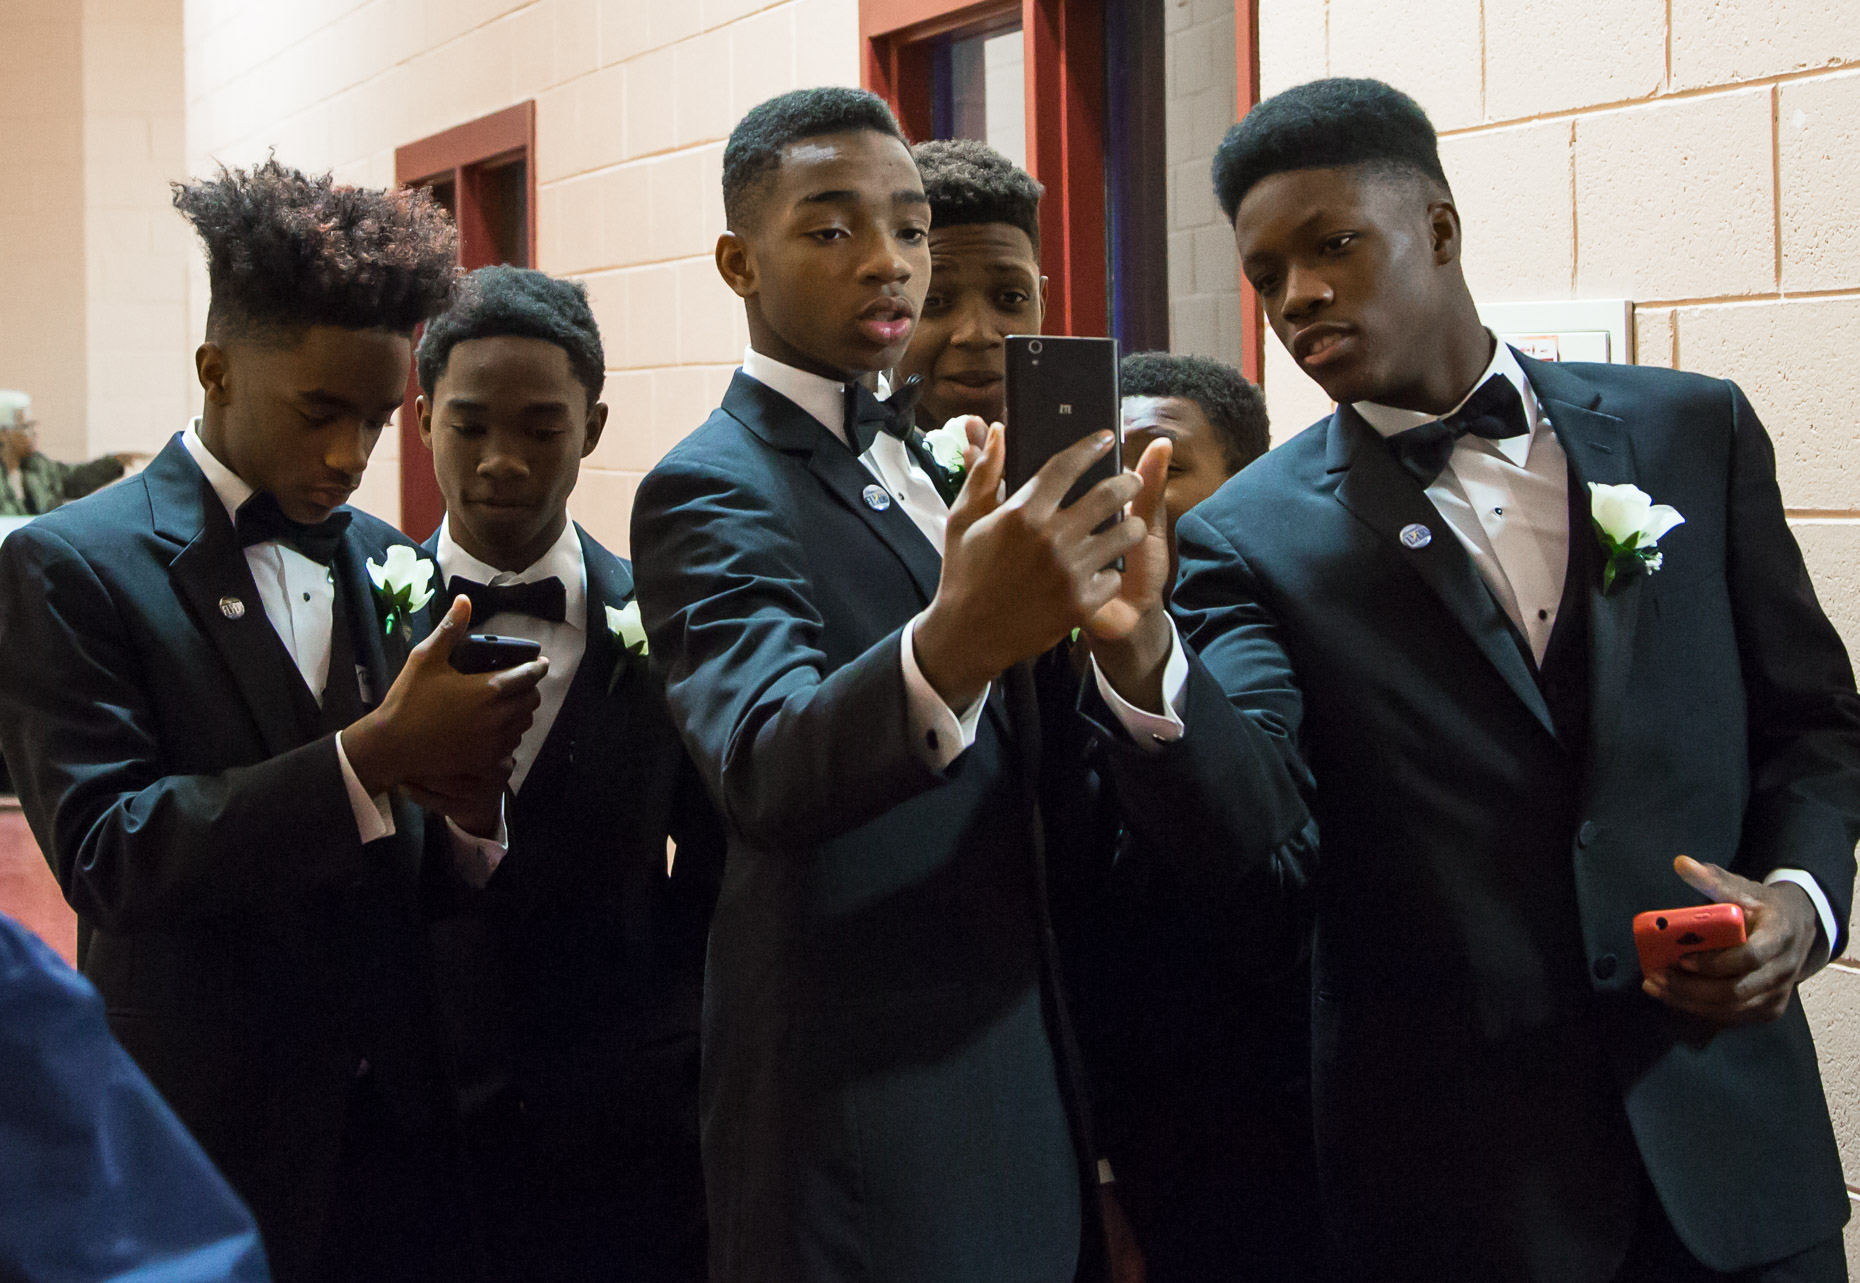 A group of young men pose for a group selfie at the Northcott Neighborhood House for the 500 Black Tuxedos Event, organized by Andre Lee Ellis on Saturday December 12th, 2015 in Milwaukee, Wisconsin.